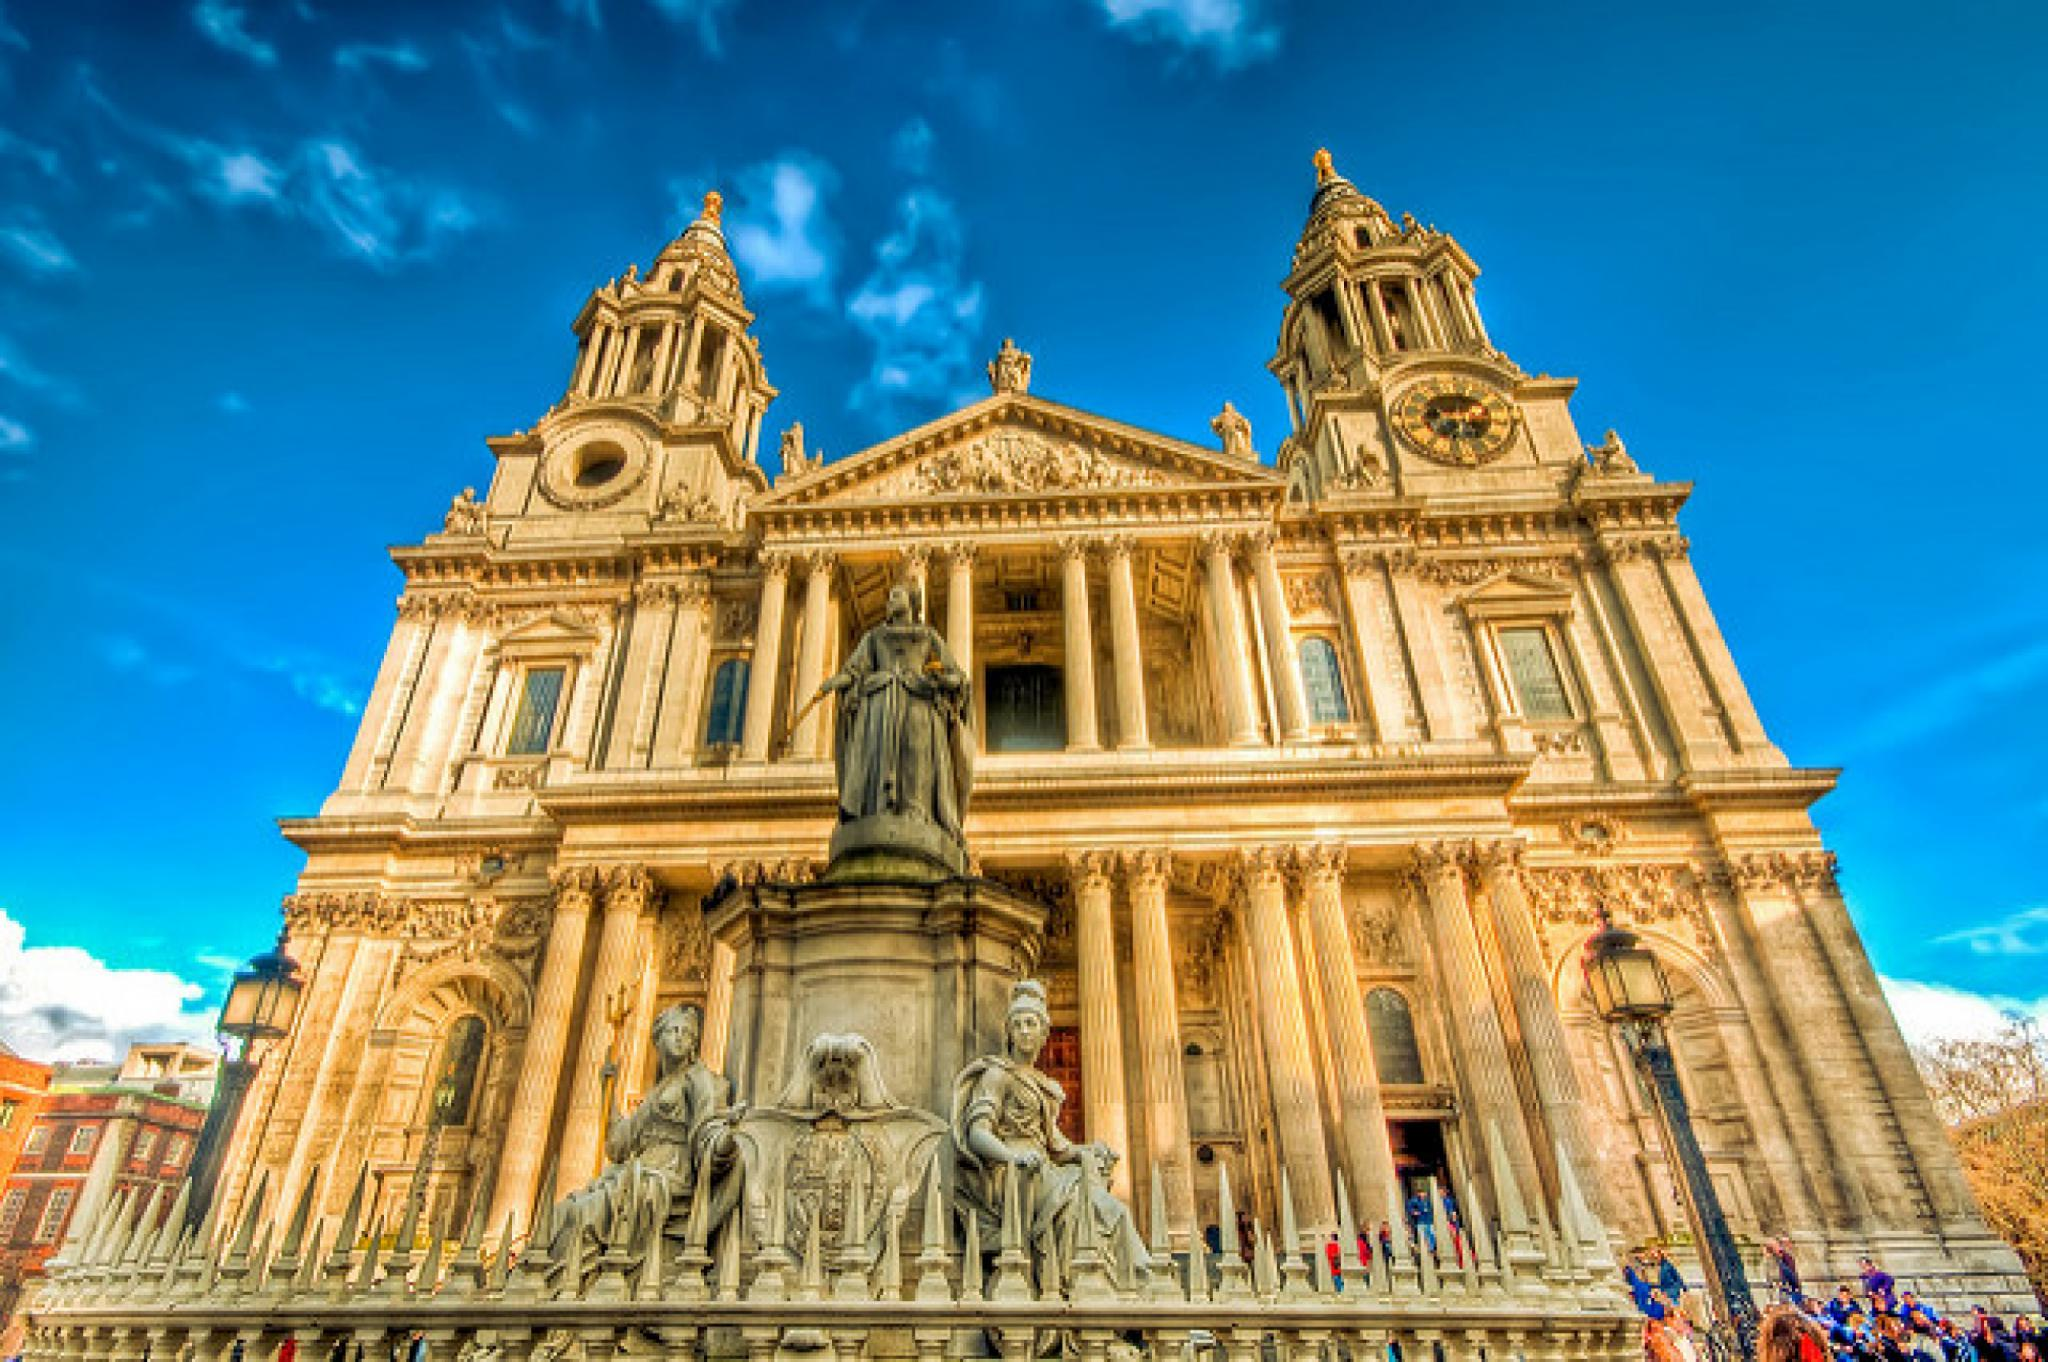 st pauls cathedral in london Book your st paul's cathedral london tickets now best prices and deals for st paul's cathedral find more information, timings, reviews and photos here.